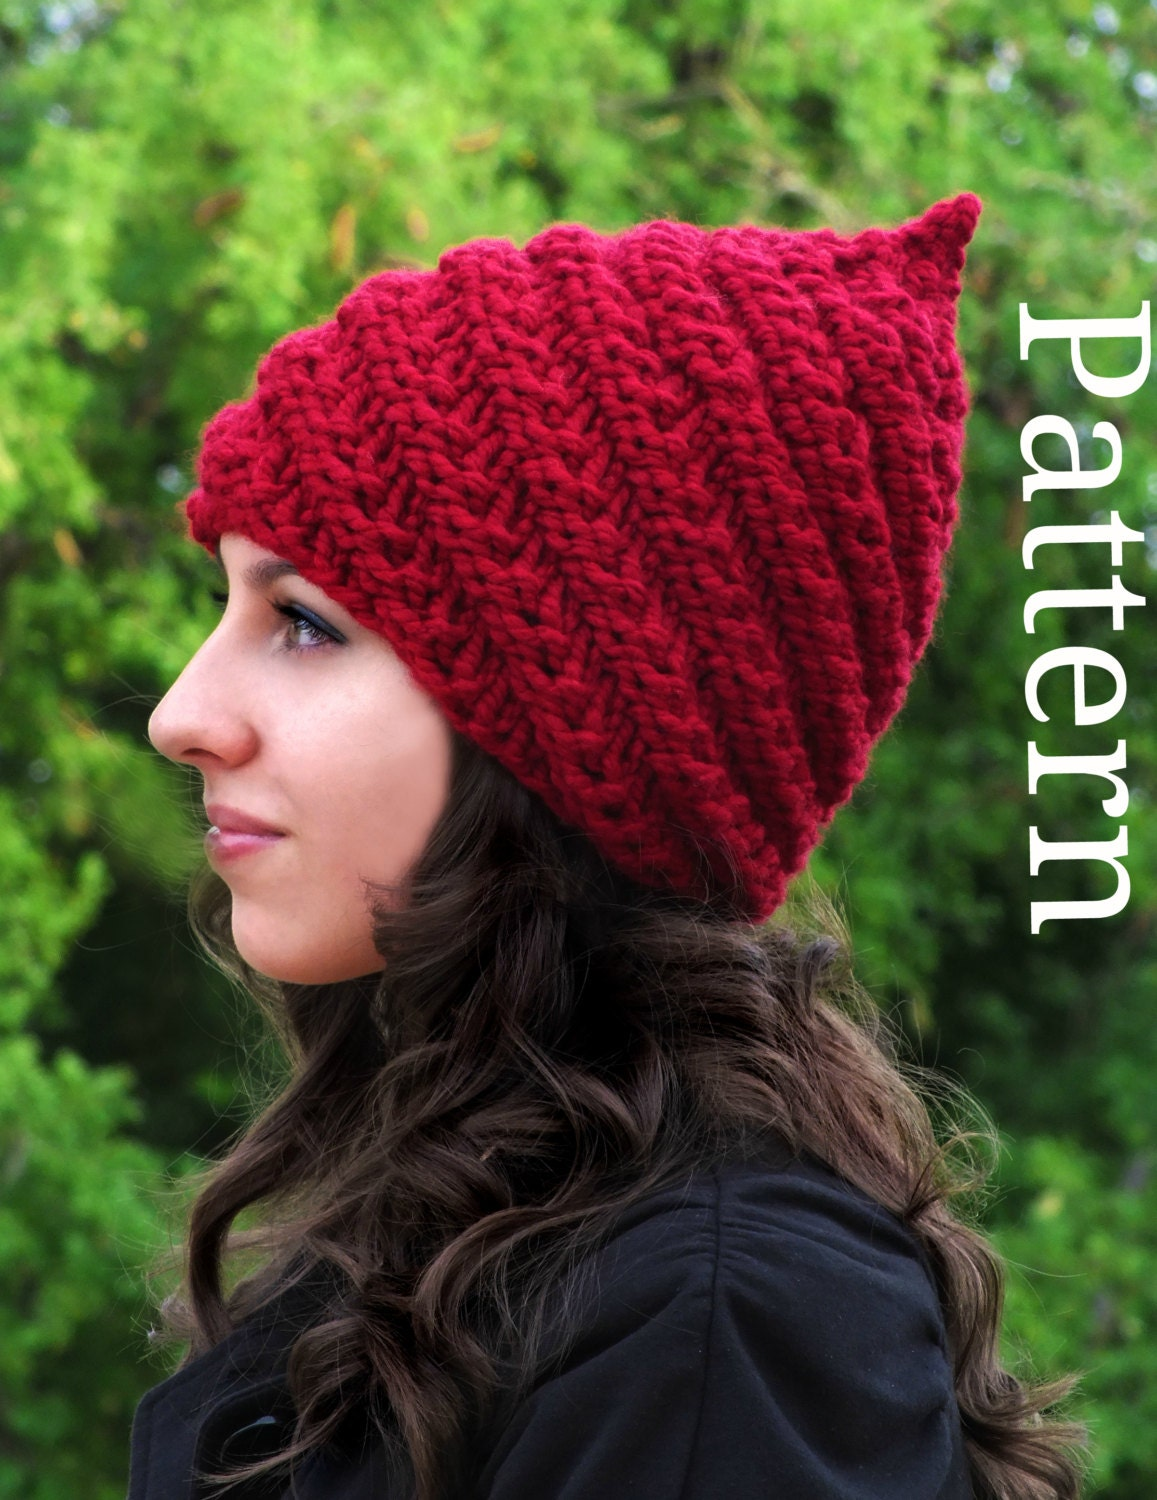 Knitting Pattern For Gnome Hat : Gnome Hat Pattern Adult Knit Hat Knitting pattern by ...